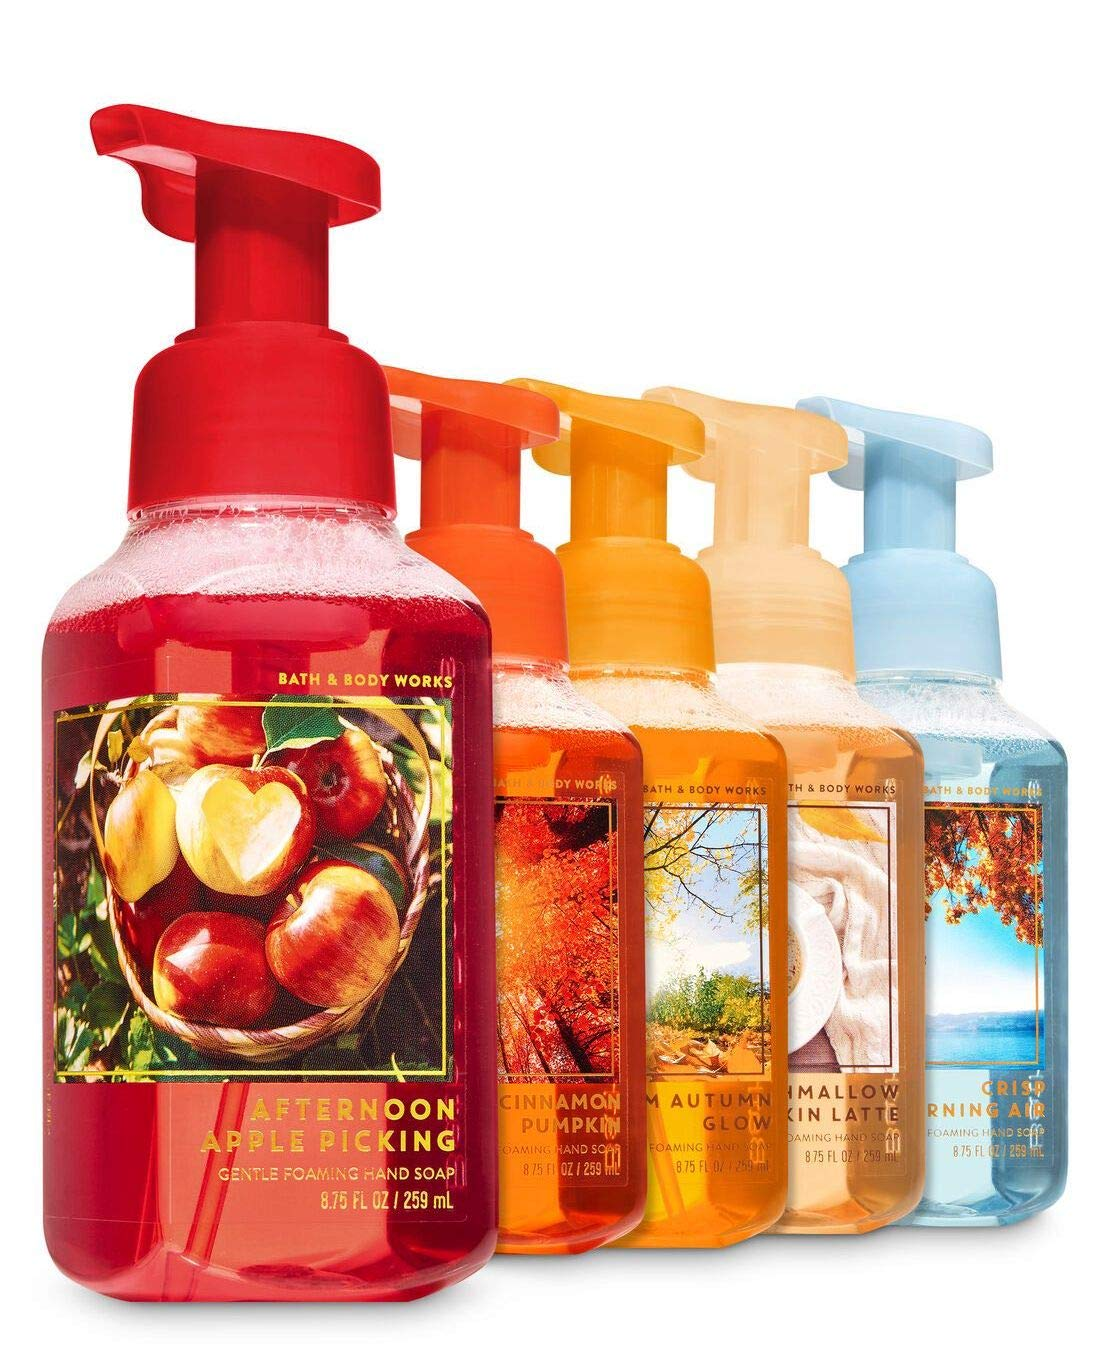 Bath and Body Works Fall Favorites - Set of 5 Foaming Hand Soaps - Sweet Cinnamon Pumpkin, Marshmallow Pumpkin Latte, Crisp Morning Air, Afternoon Apple Picking, Warm Autumn Glow : Beauty